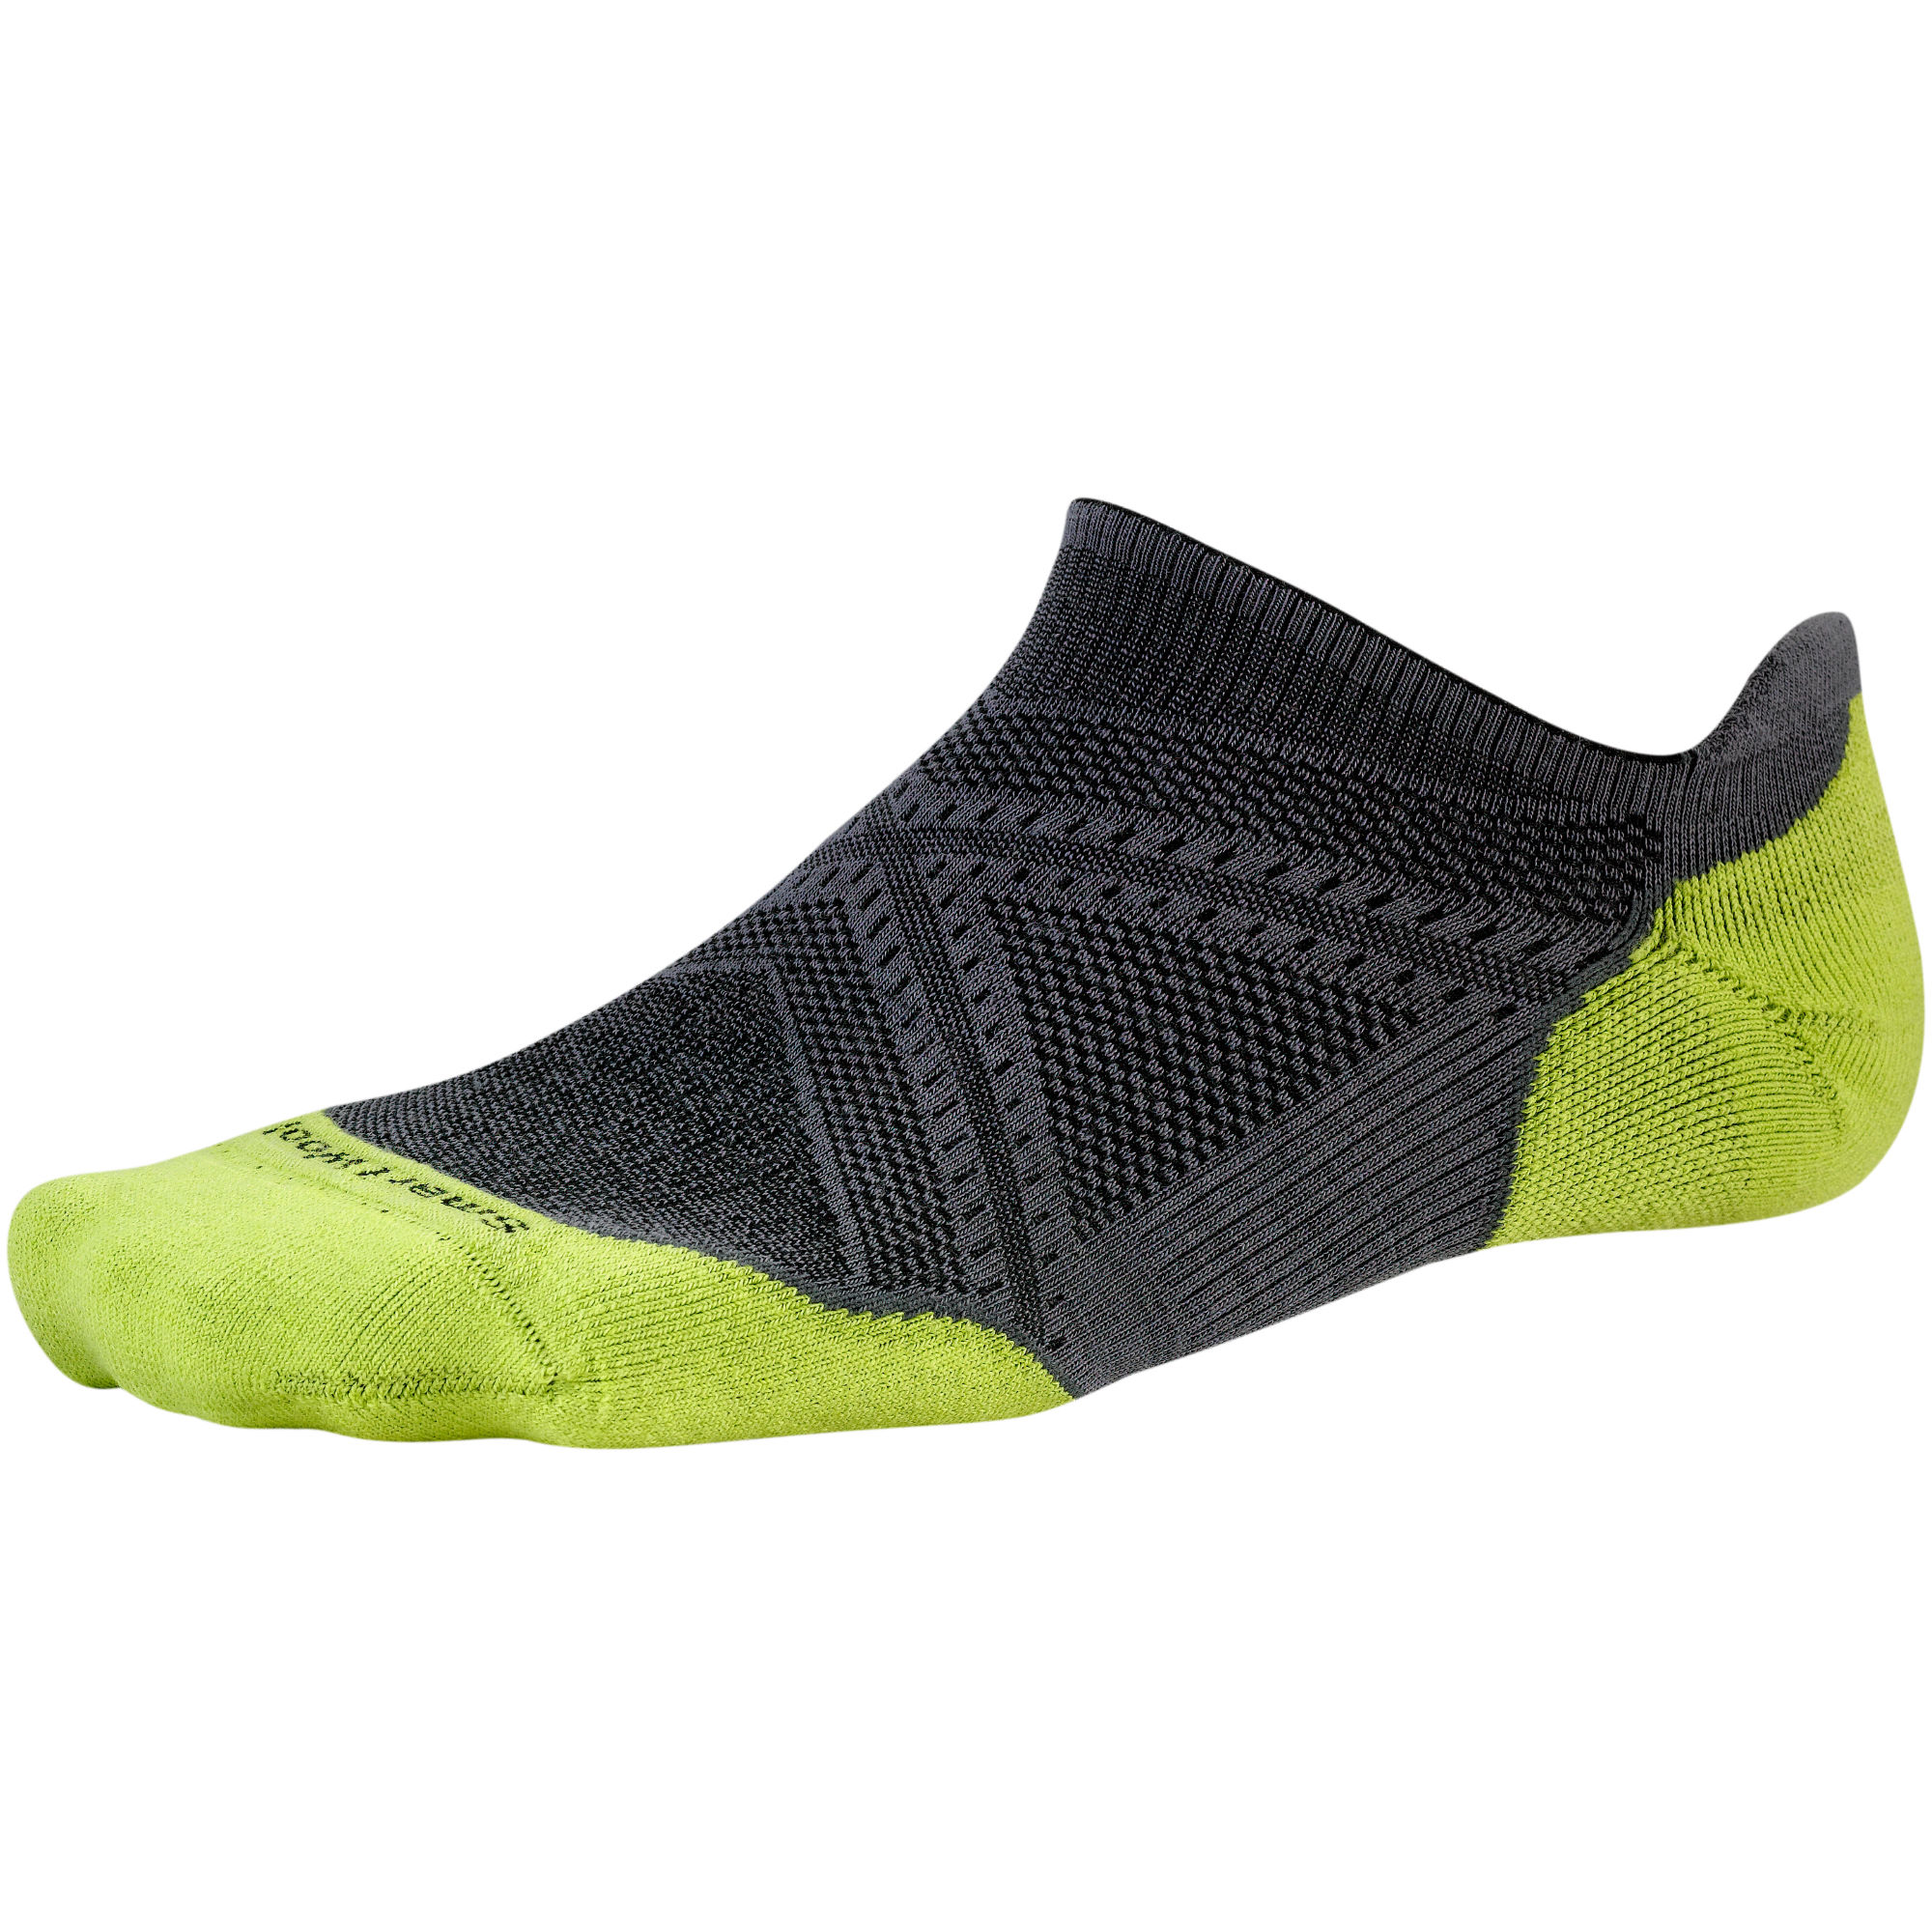 wiggle smartwool phd run light elite micro sock. Black Bedroom Furniture Sets. Home Design Ideas